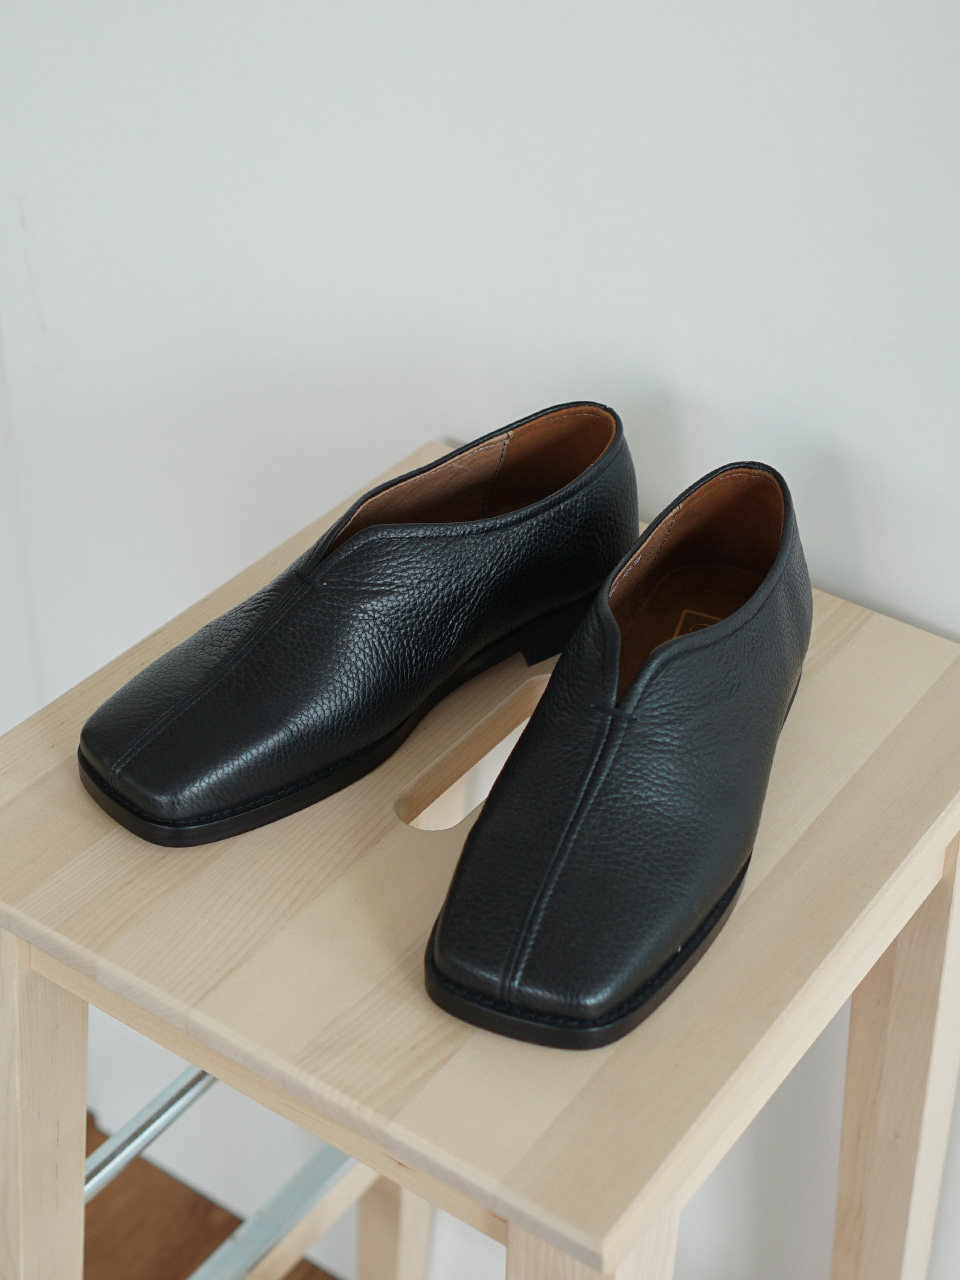 Chinese Leather Loafer